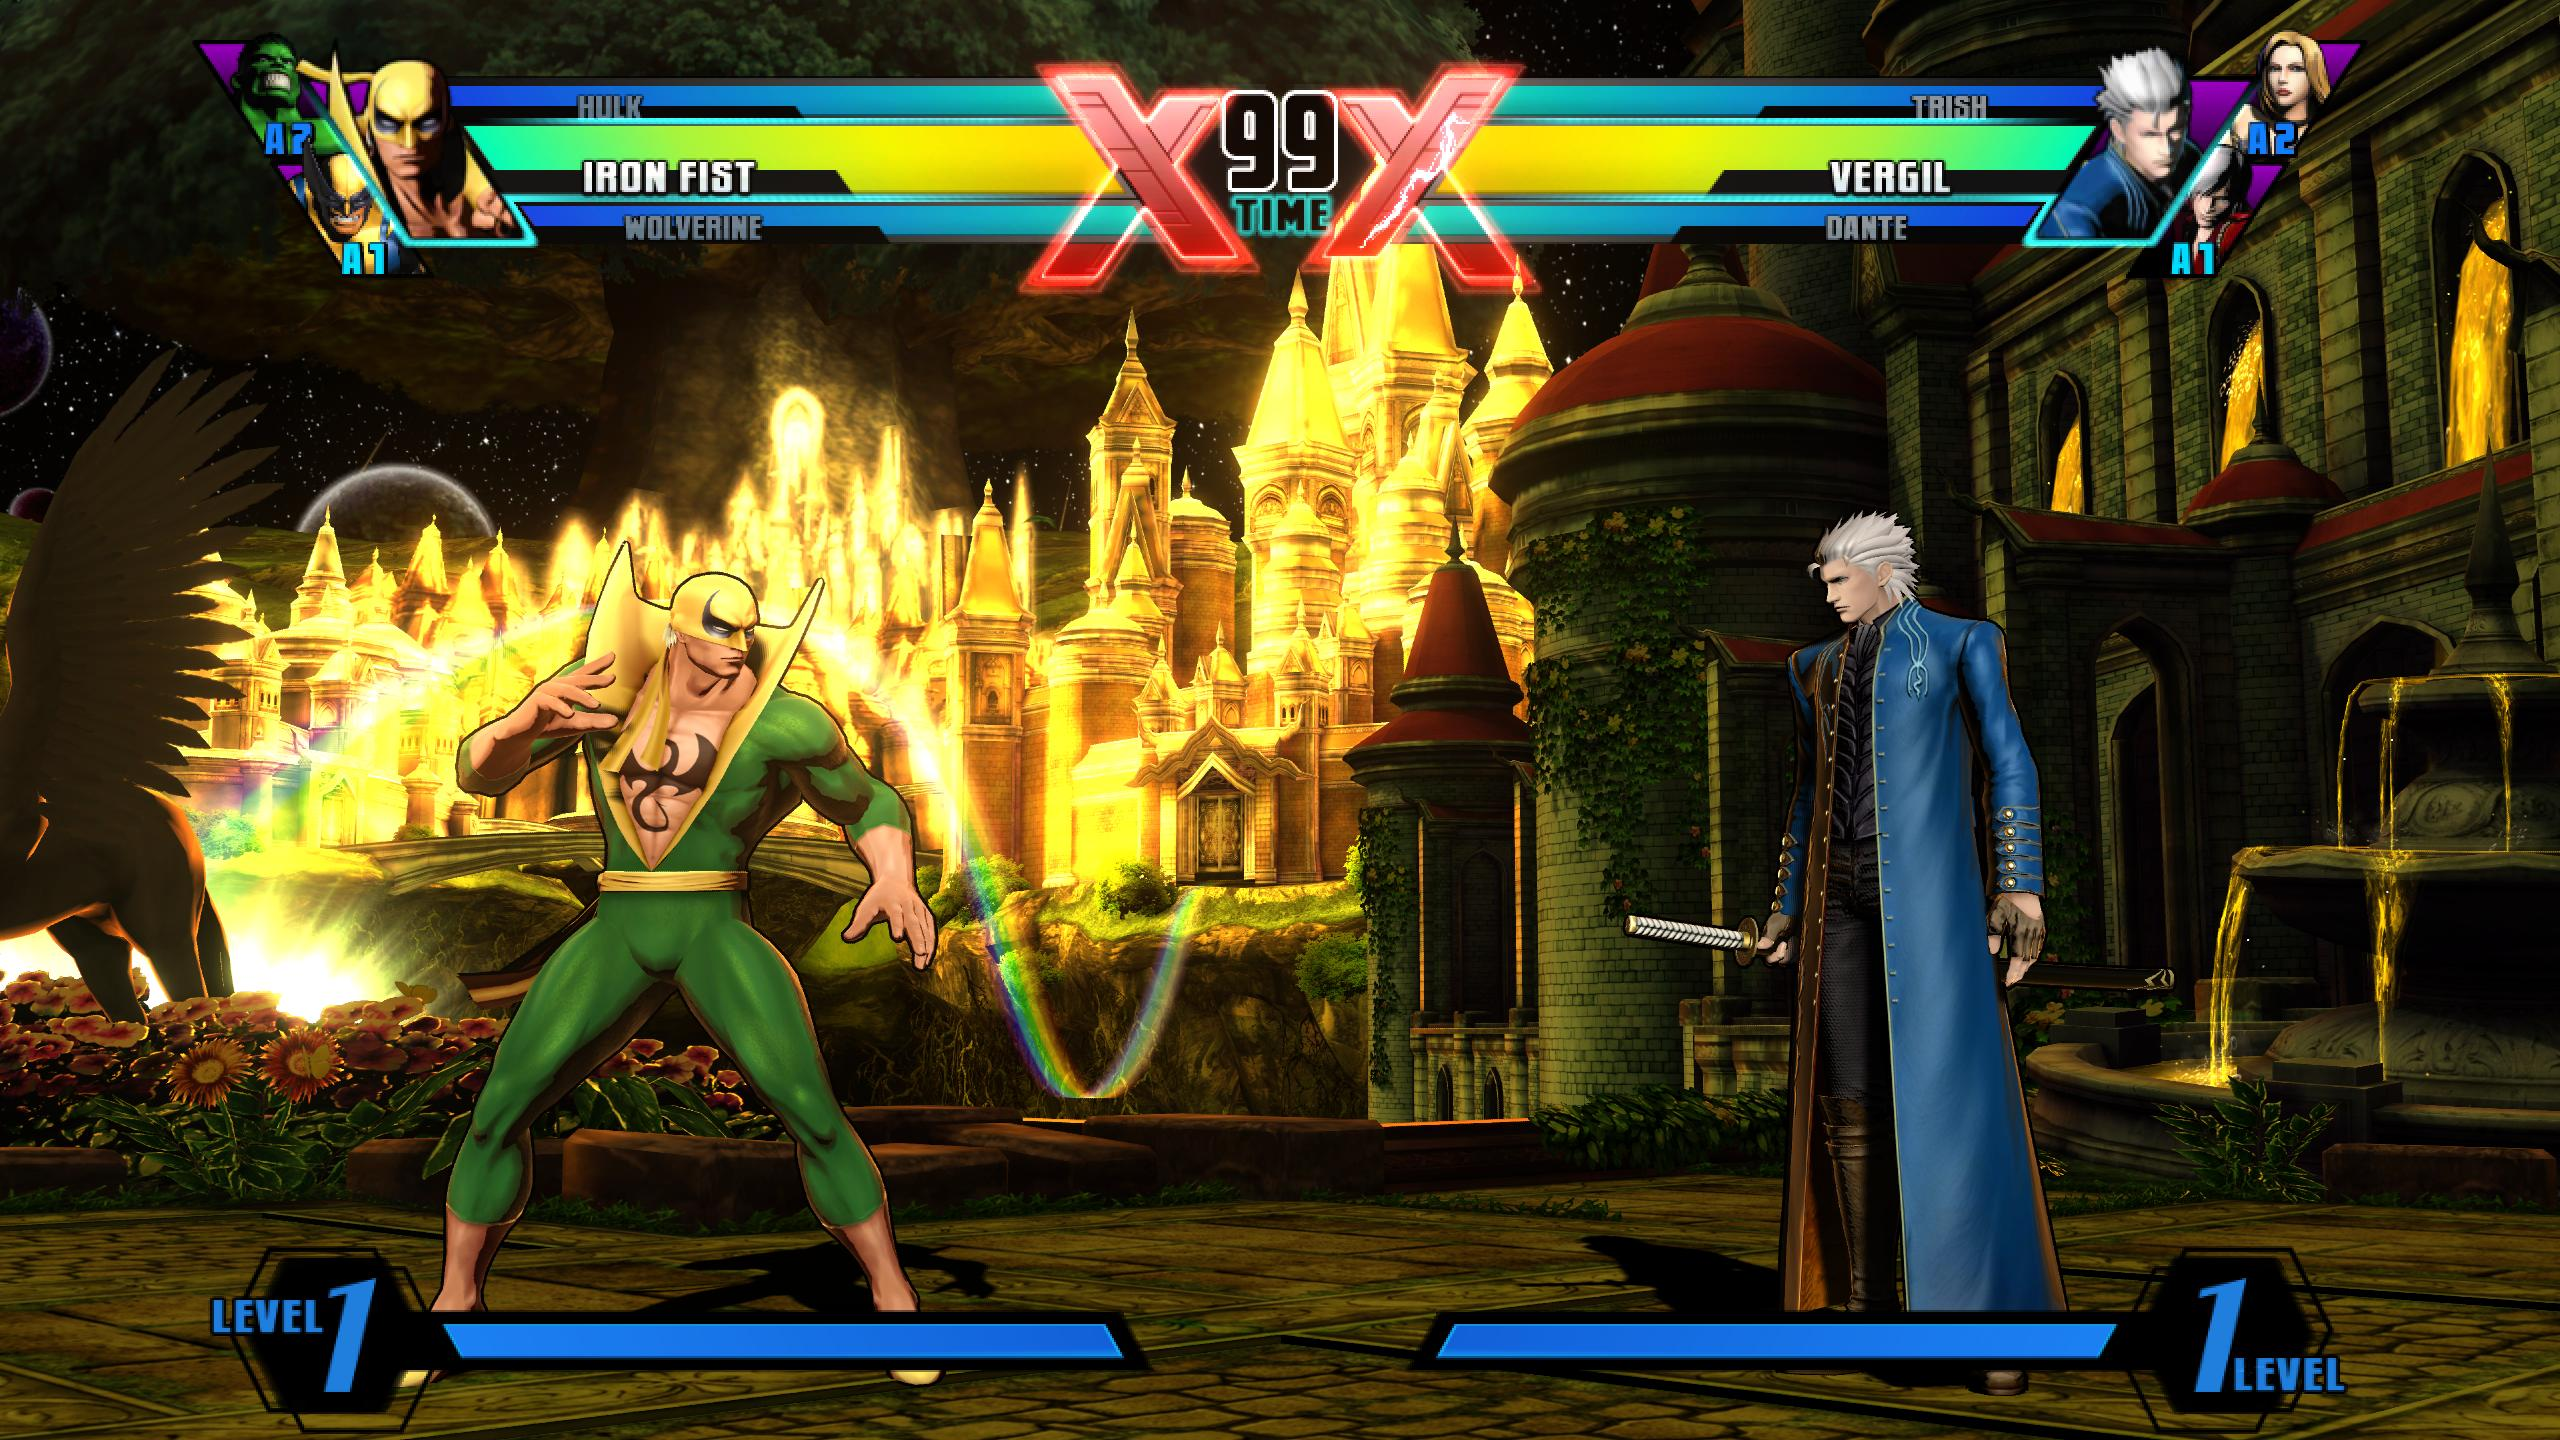 Vergil dans Ultimate Marvel vs. Capcom 3 6150551193_7ebfa3fd92_o